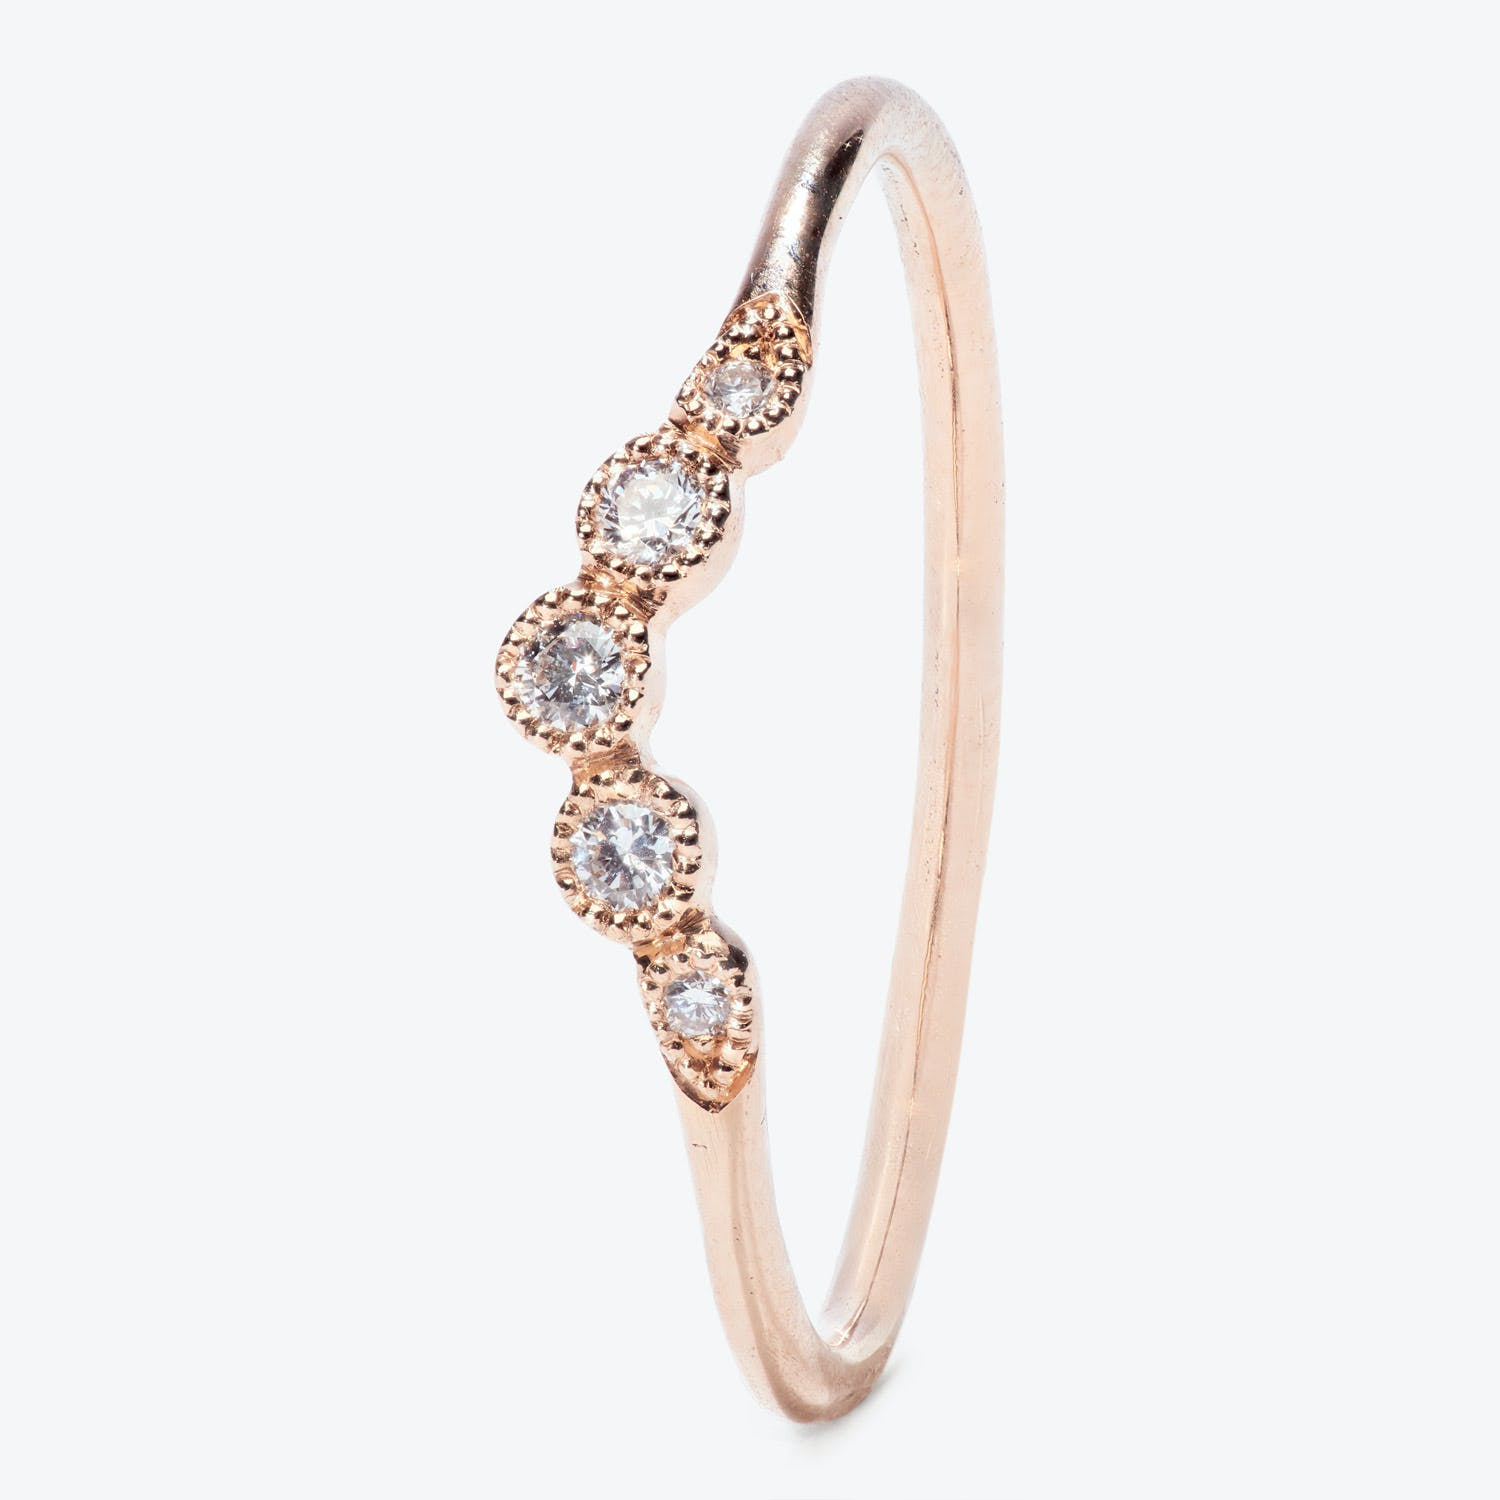 Myrtille Beck Diamond Extra Large Celestial Curve Ring